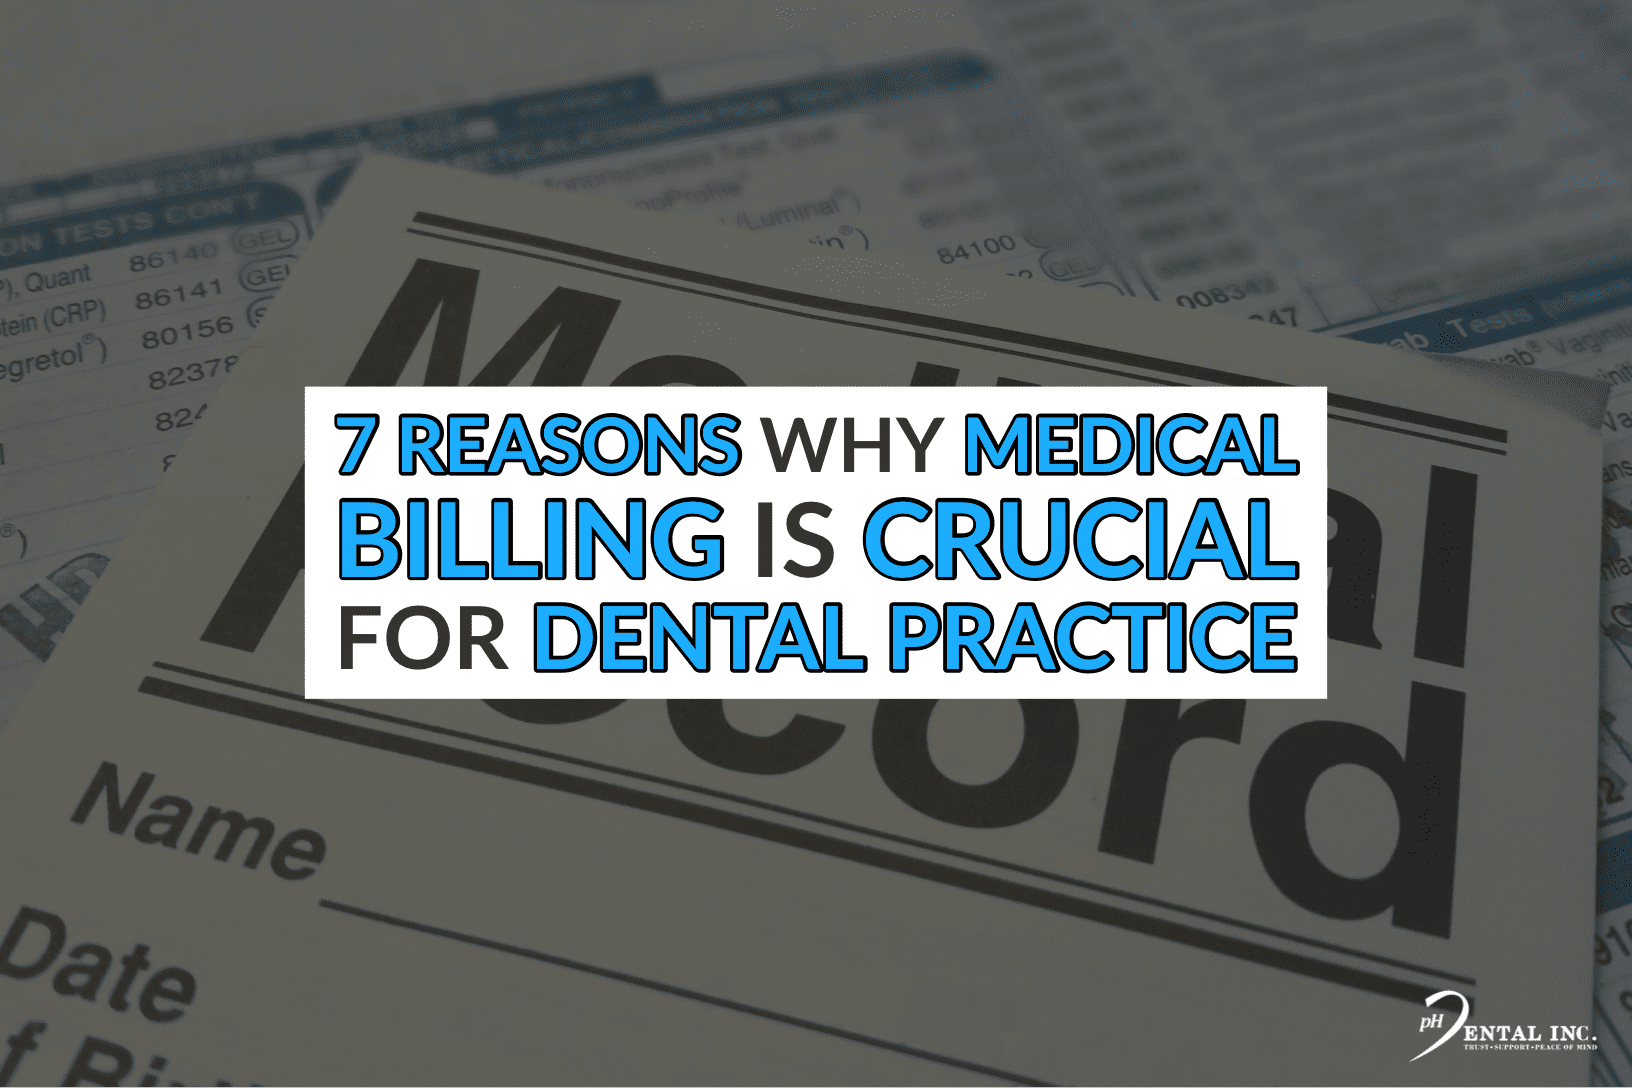 7 reasons why medical billing for dental practice is crucial